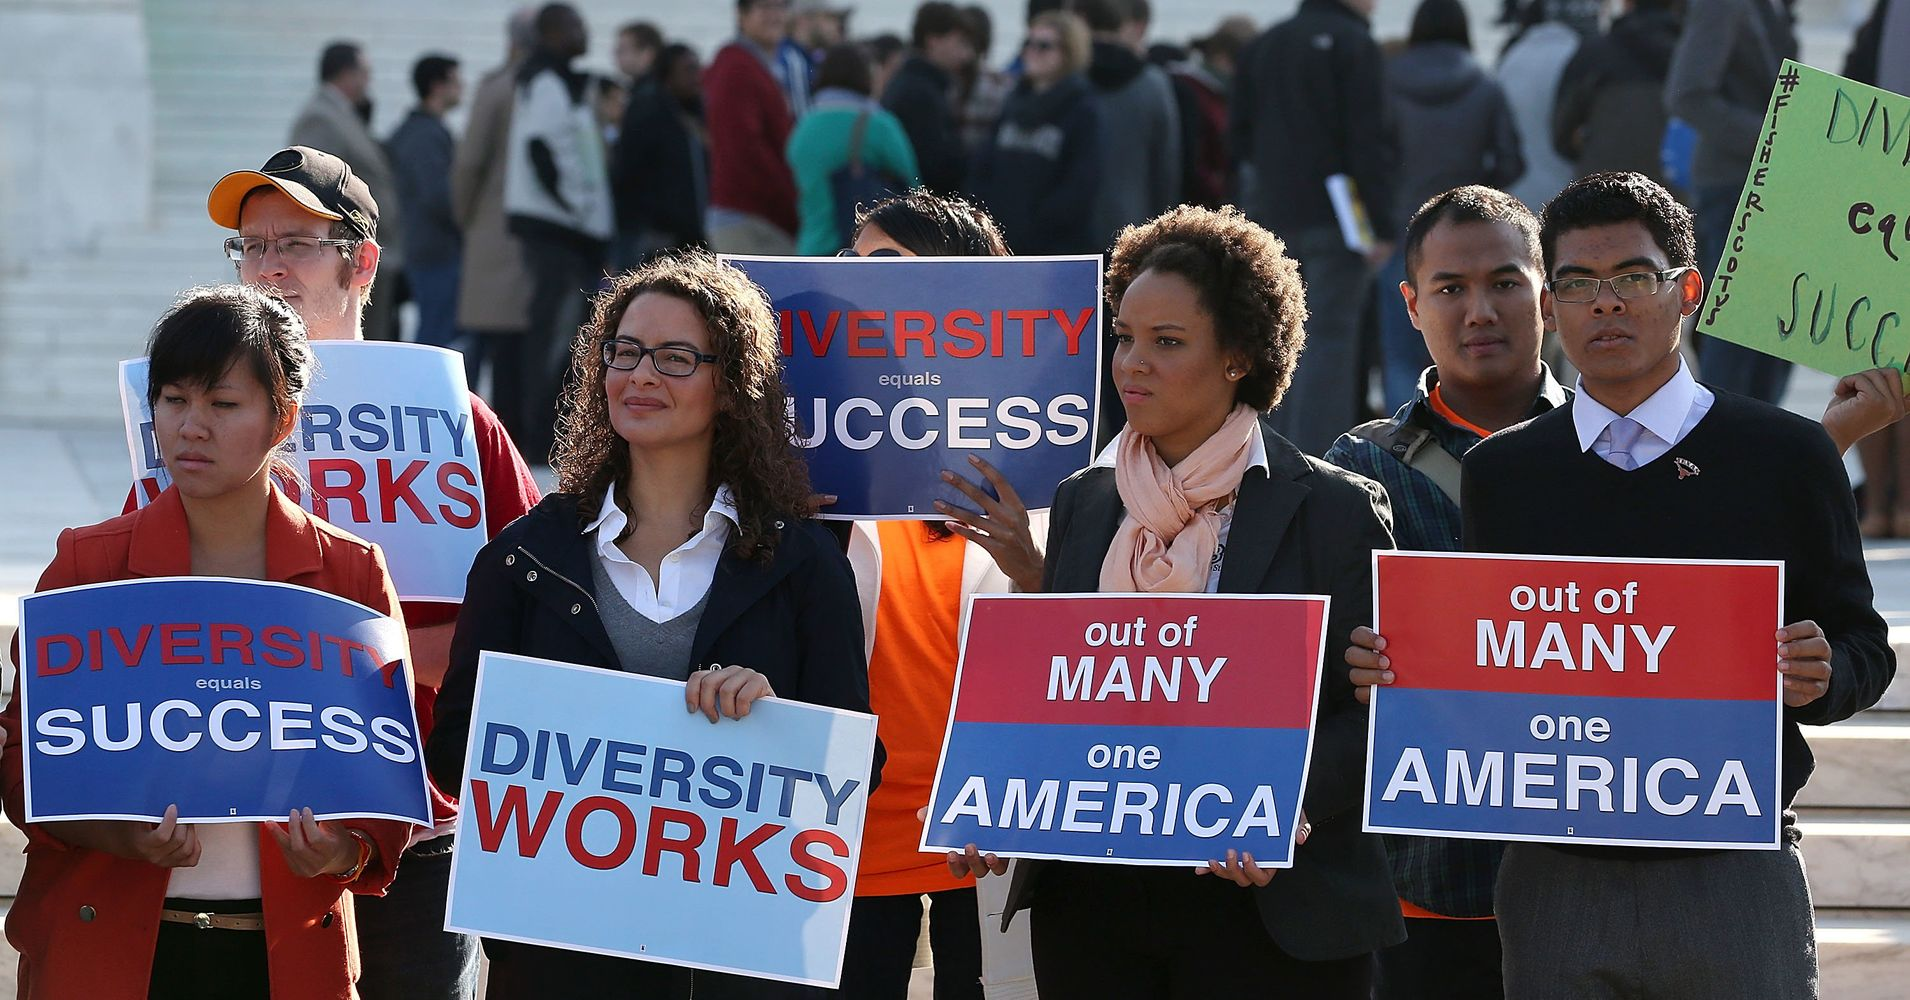 Affirmative action: a contradiction in itself